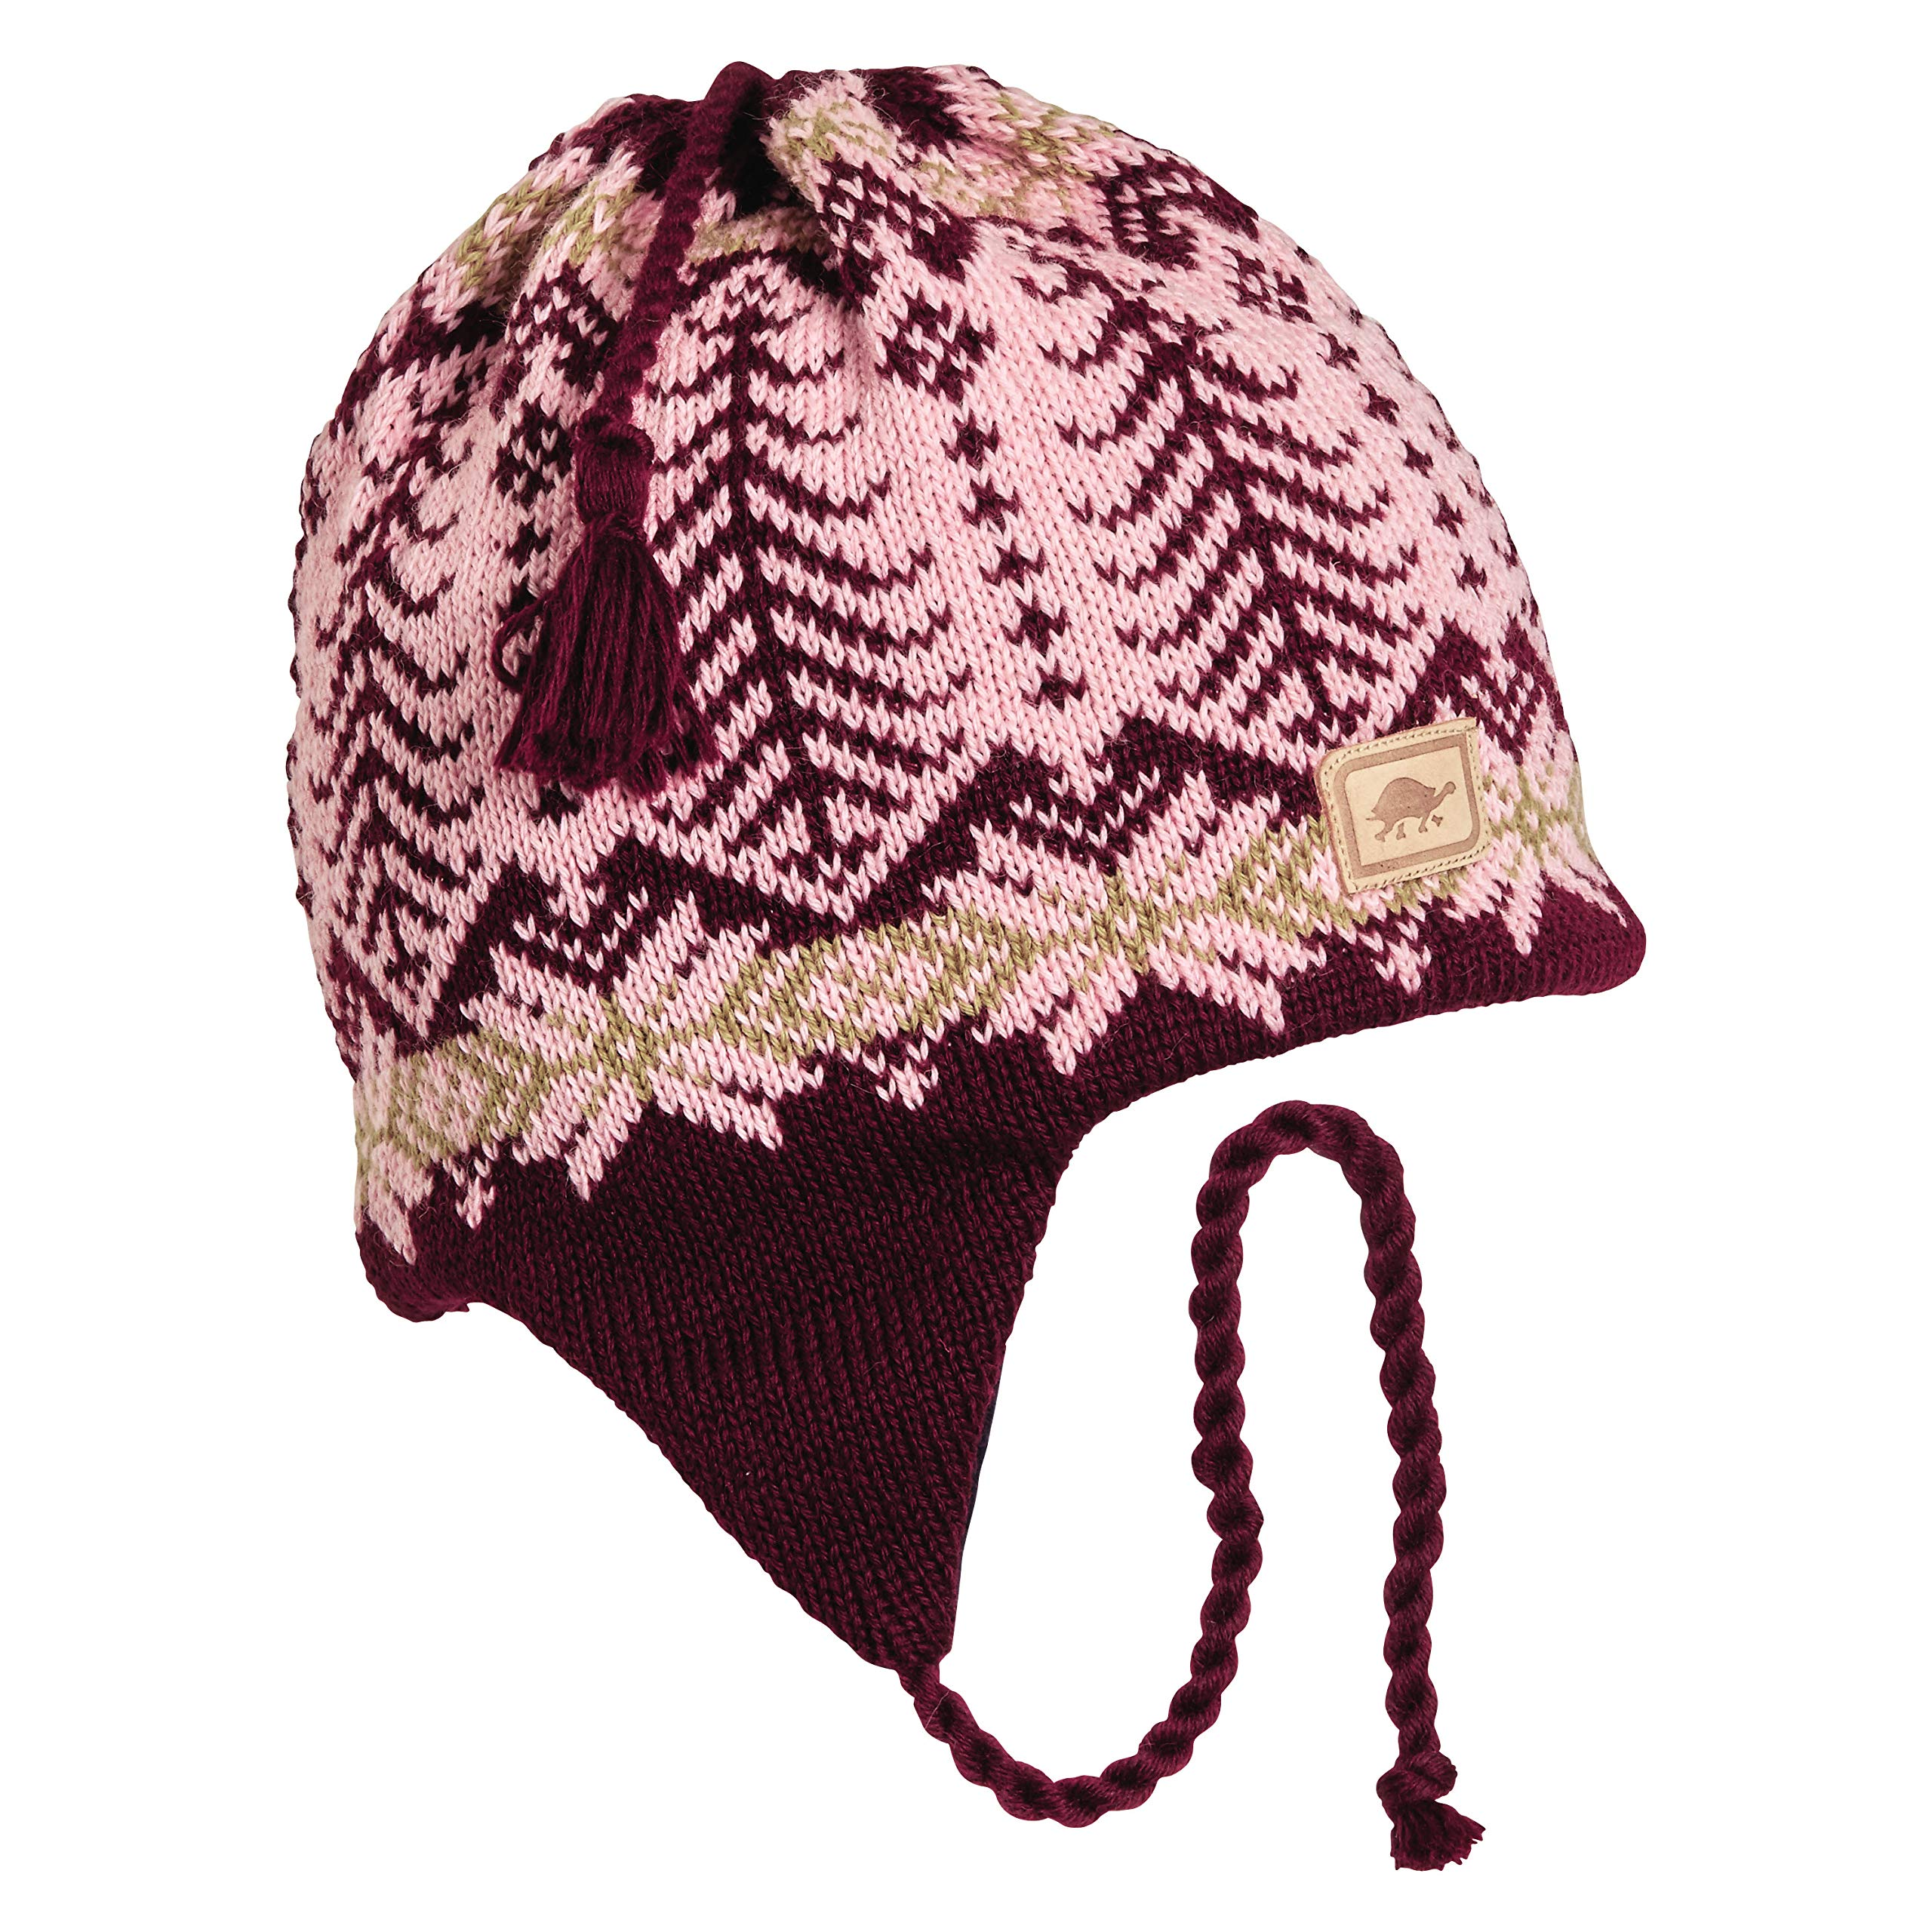 Turtle Fur Twiggly Classic Wool Ski Earflap Hat Light Pink by Turtle Fur (Image #1)